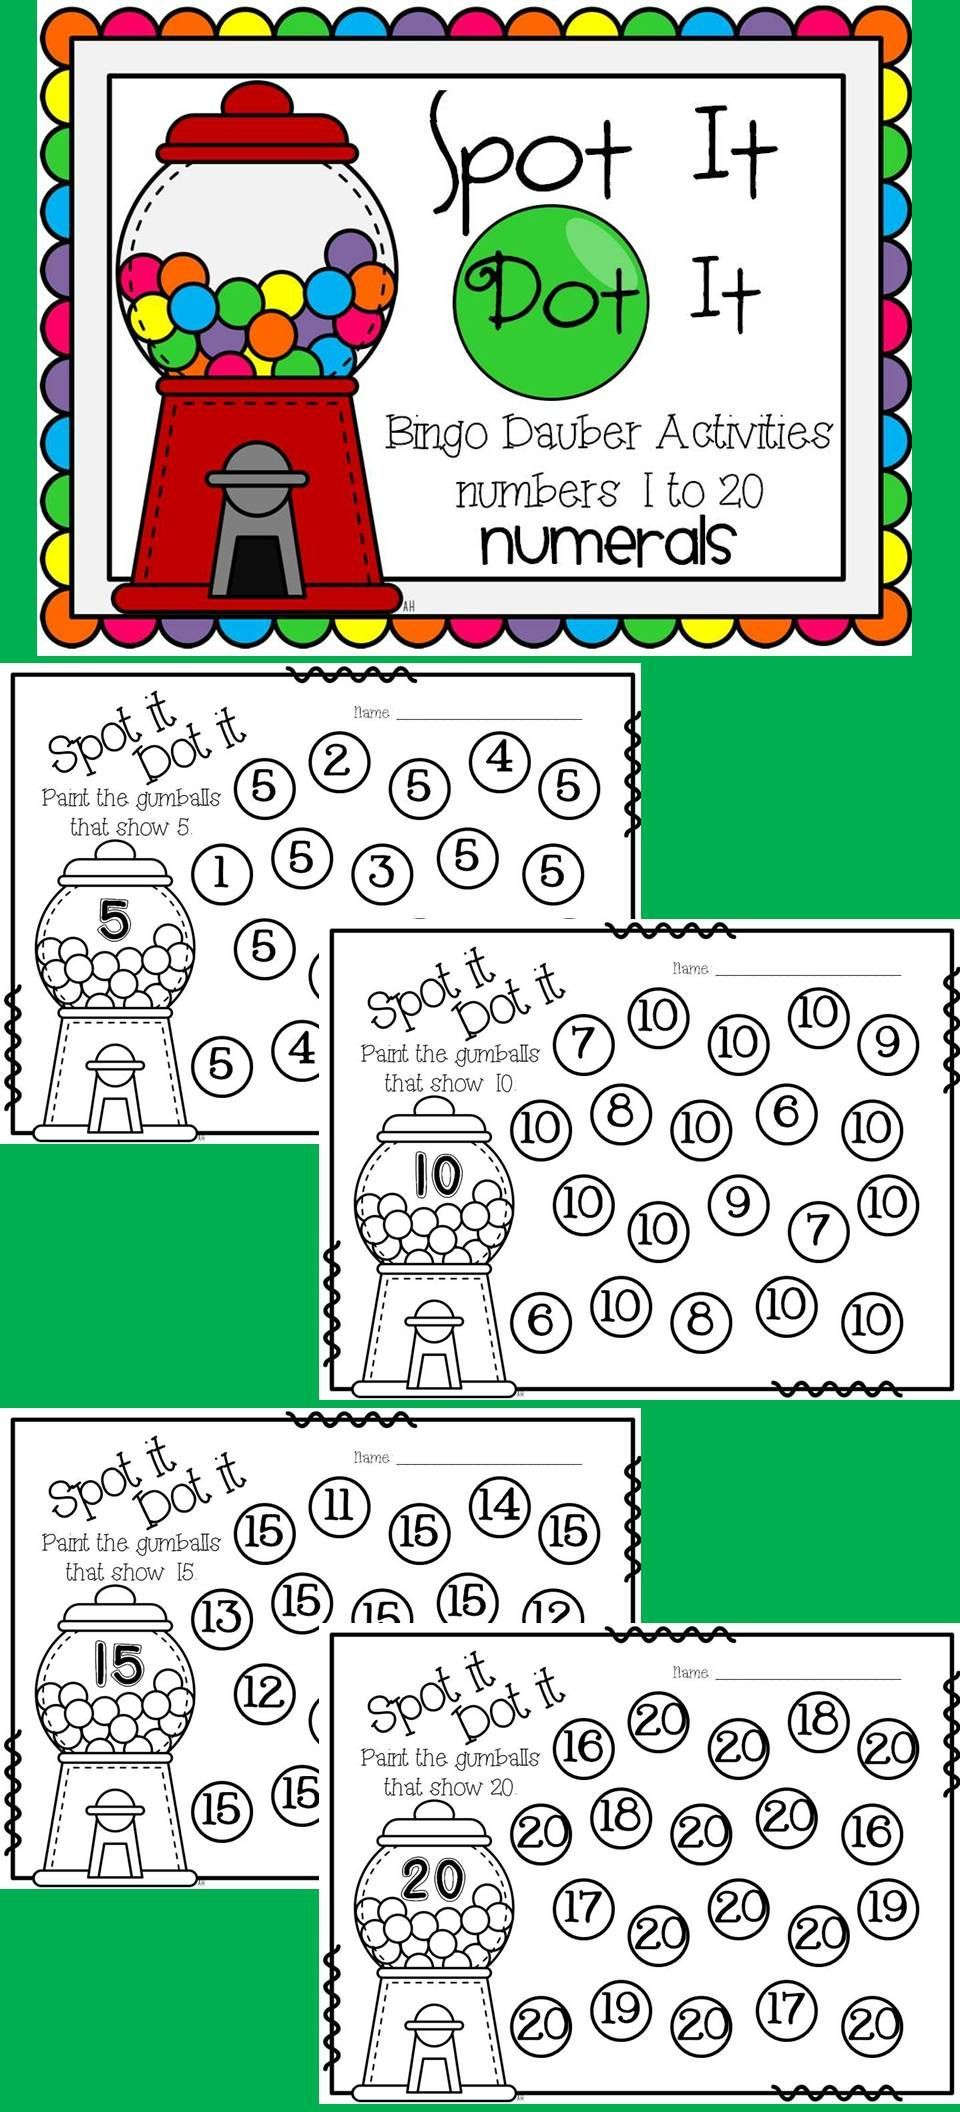 Spot It! Dot It! (Bingo Dauber Printables for Numbers to 20) | GOLD ...